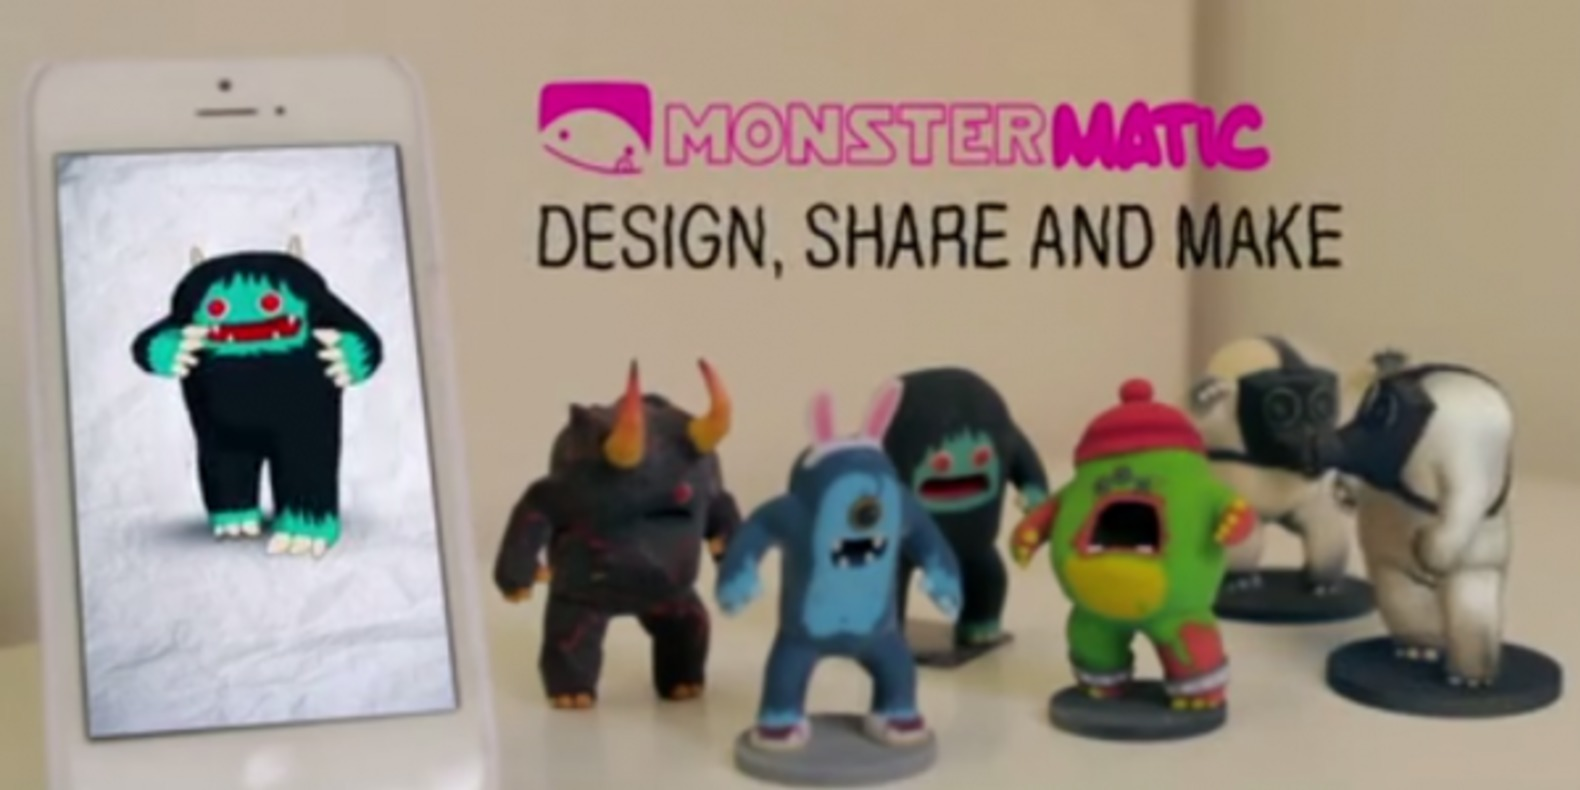 Monstermatic, monsters to customize and print in 3D